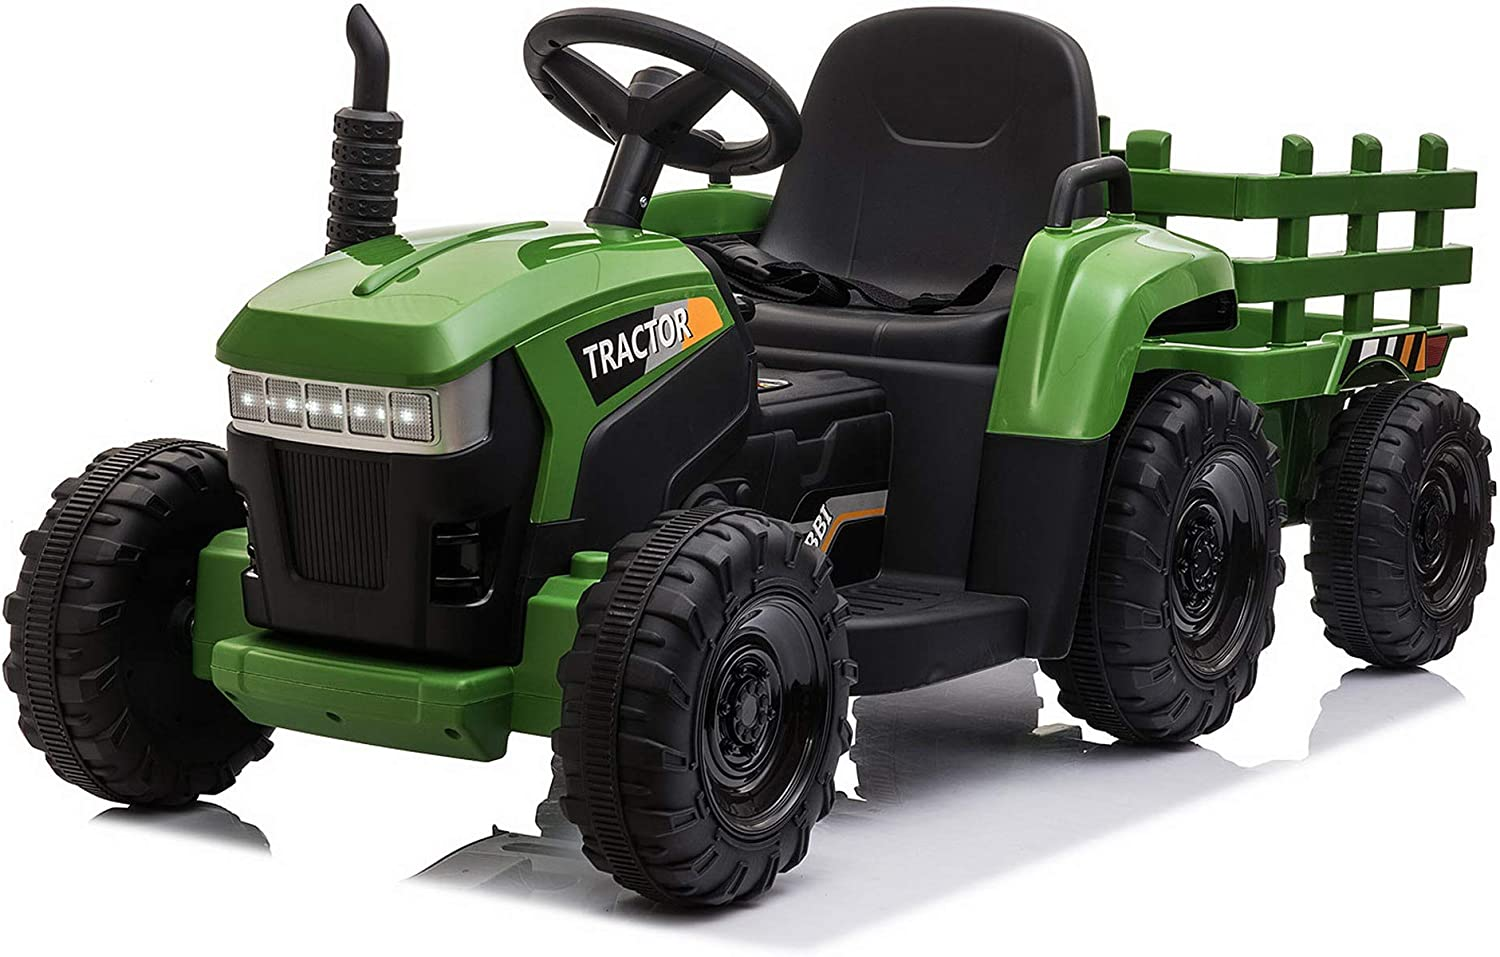 TOBBI 12v Battery-Powered Toy Tractor